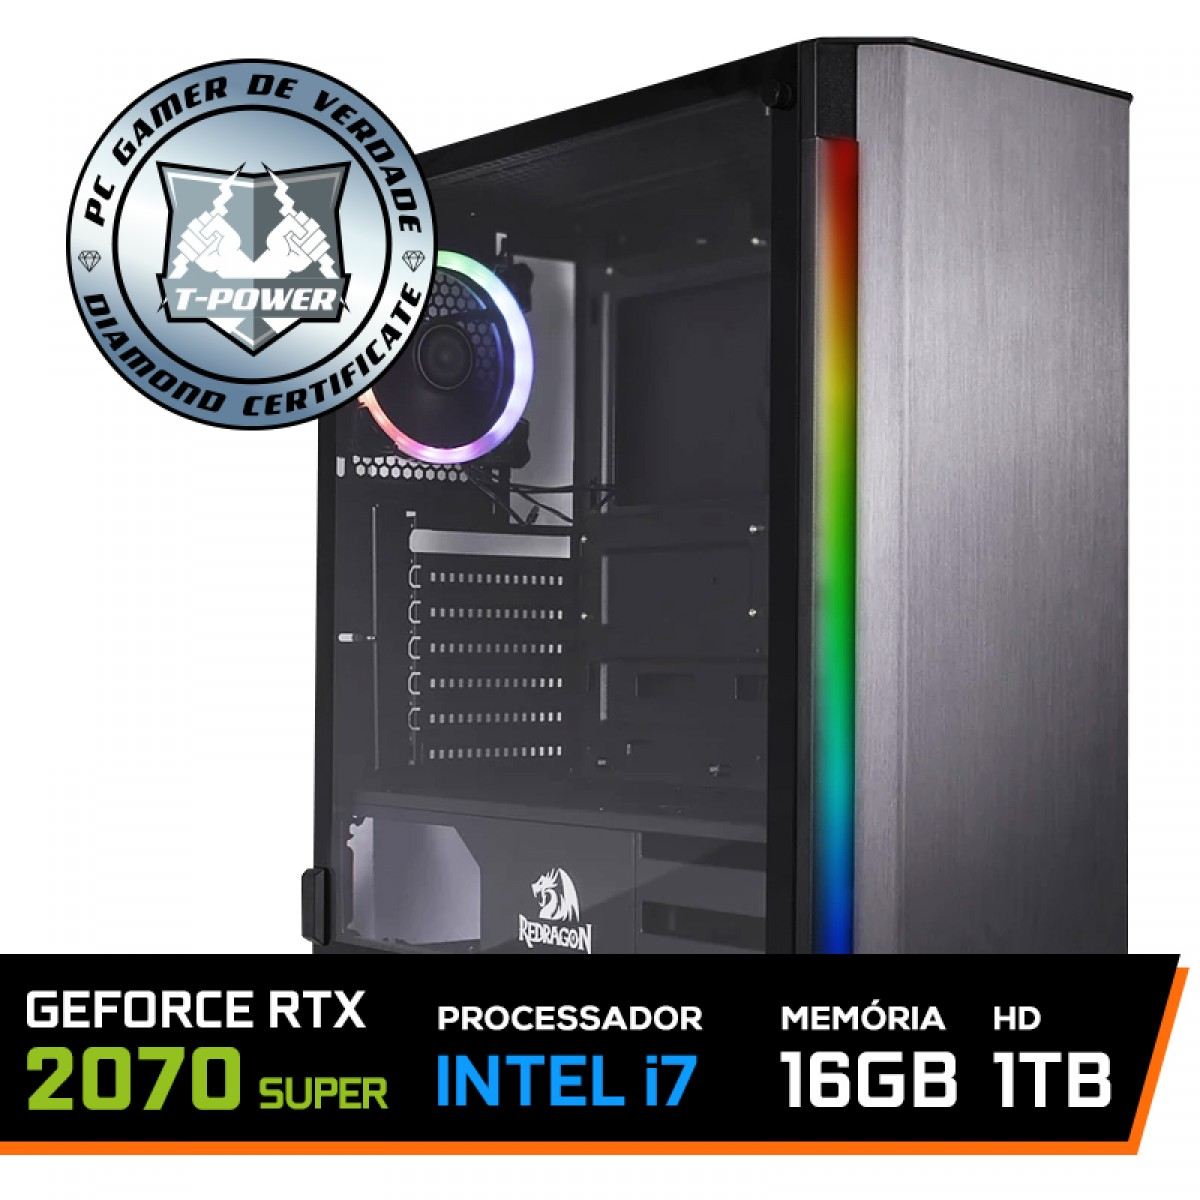 PC Gamer T-Power Captain Lvl-4 Intel I7 9700K 3.60GHz / Geforce RTX 2070 Super / 16GB DDR4 / HD 1TB / 600W